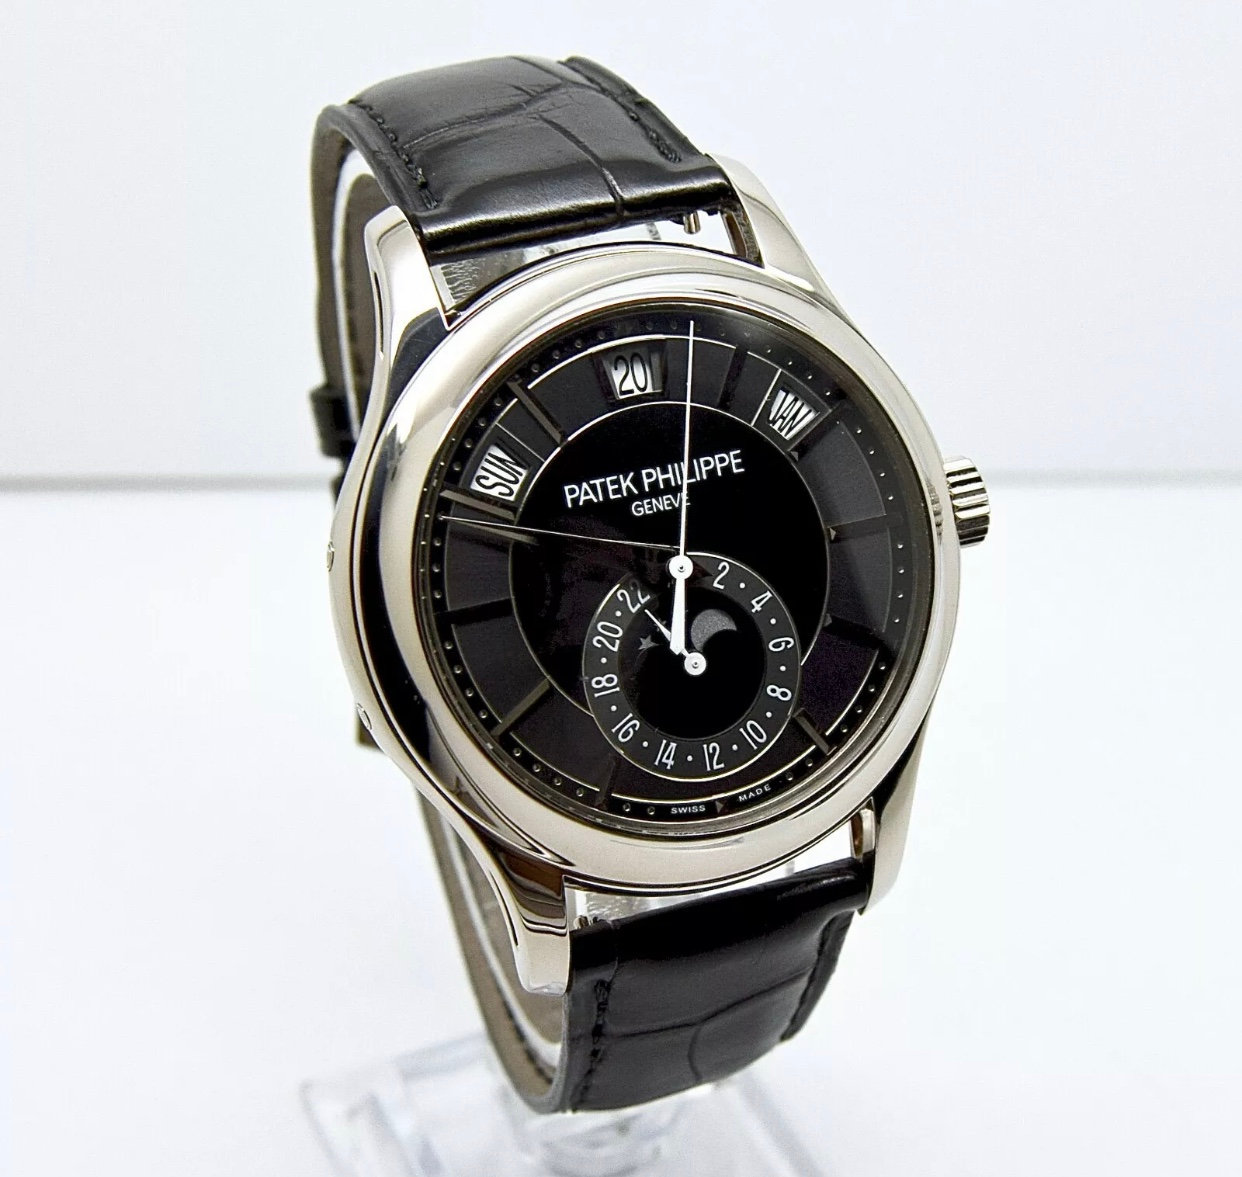 Patek Philippe Annual Calender 5205g Box And Papers 2013 Time4people